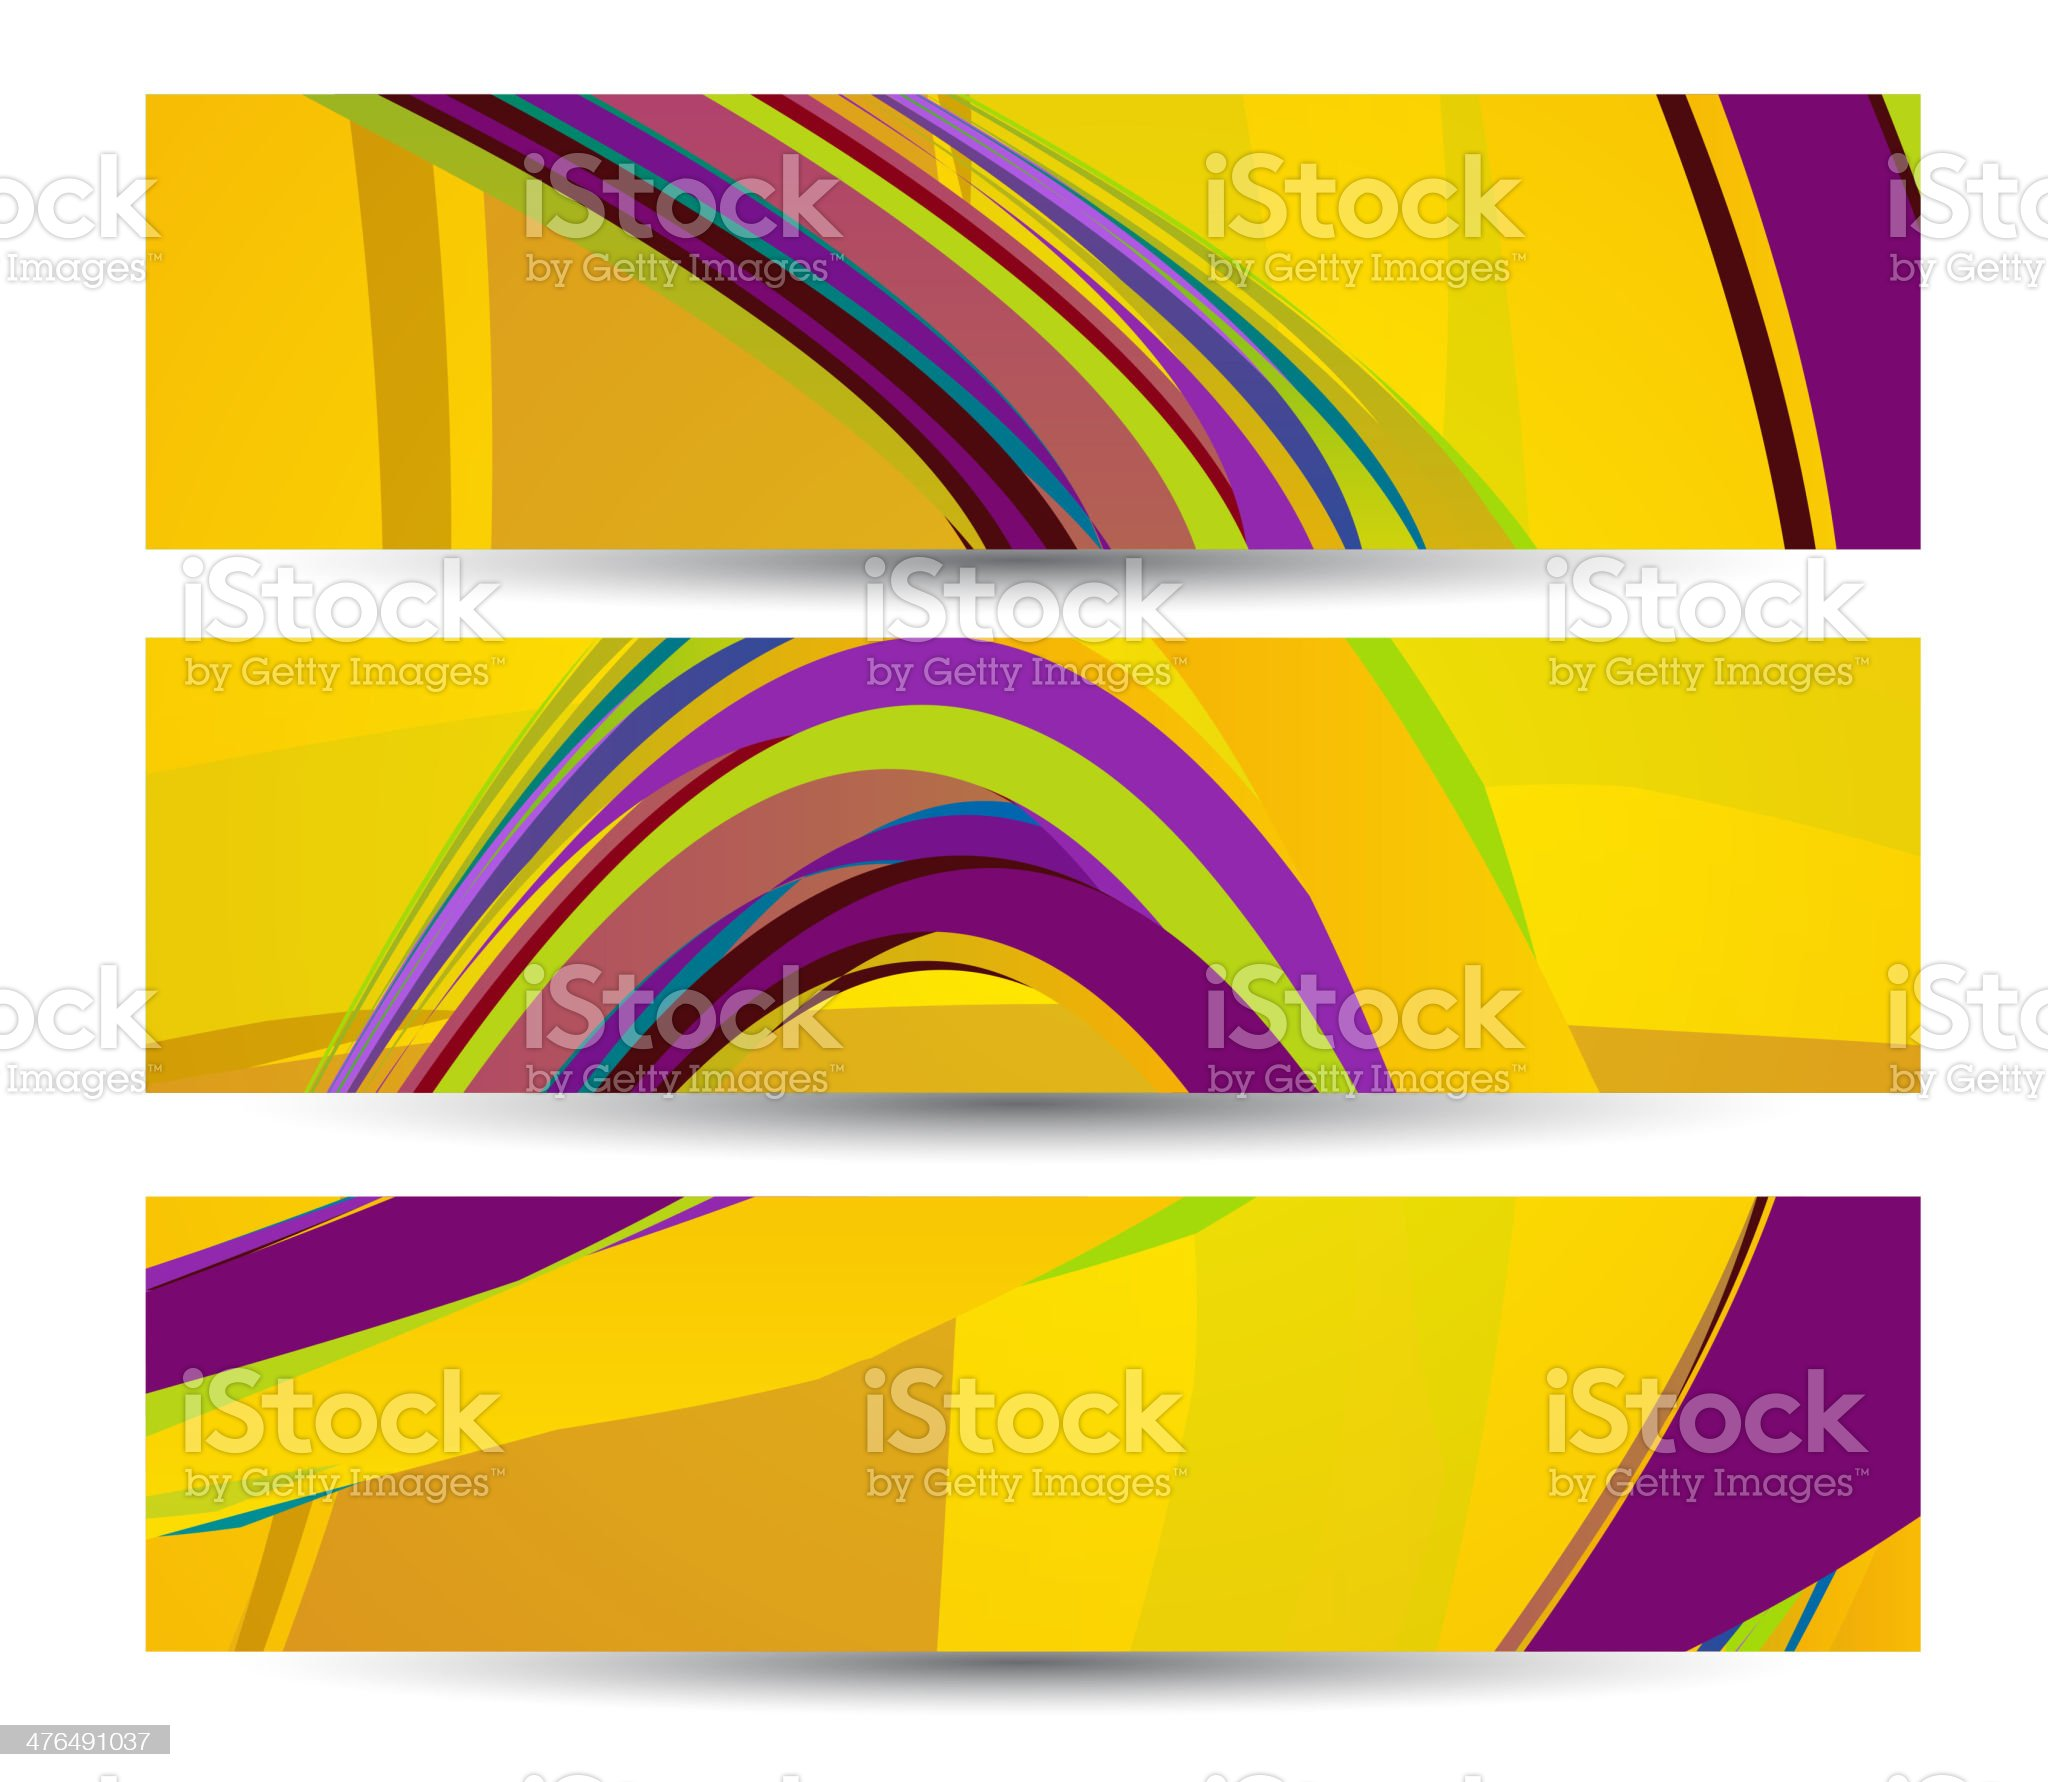 Retro abstract banner for your design royalty-free stock vector art